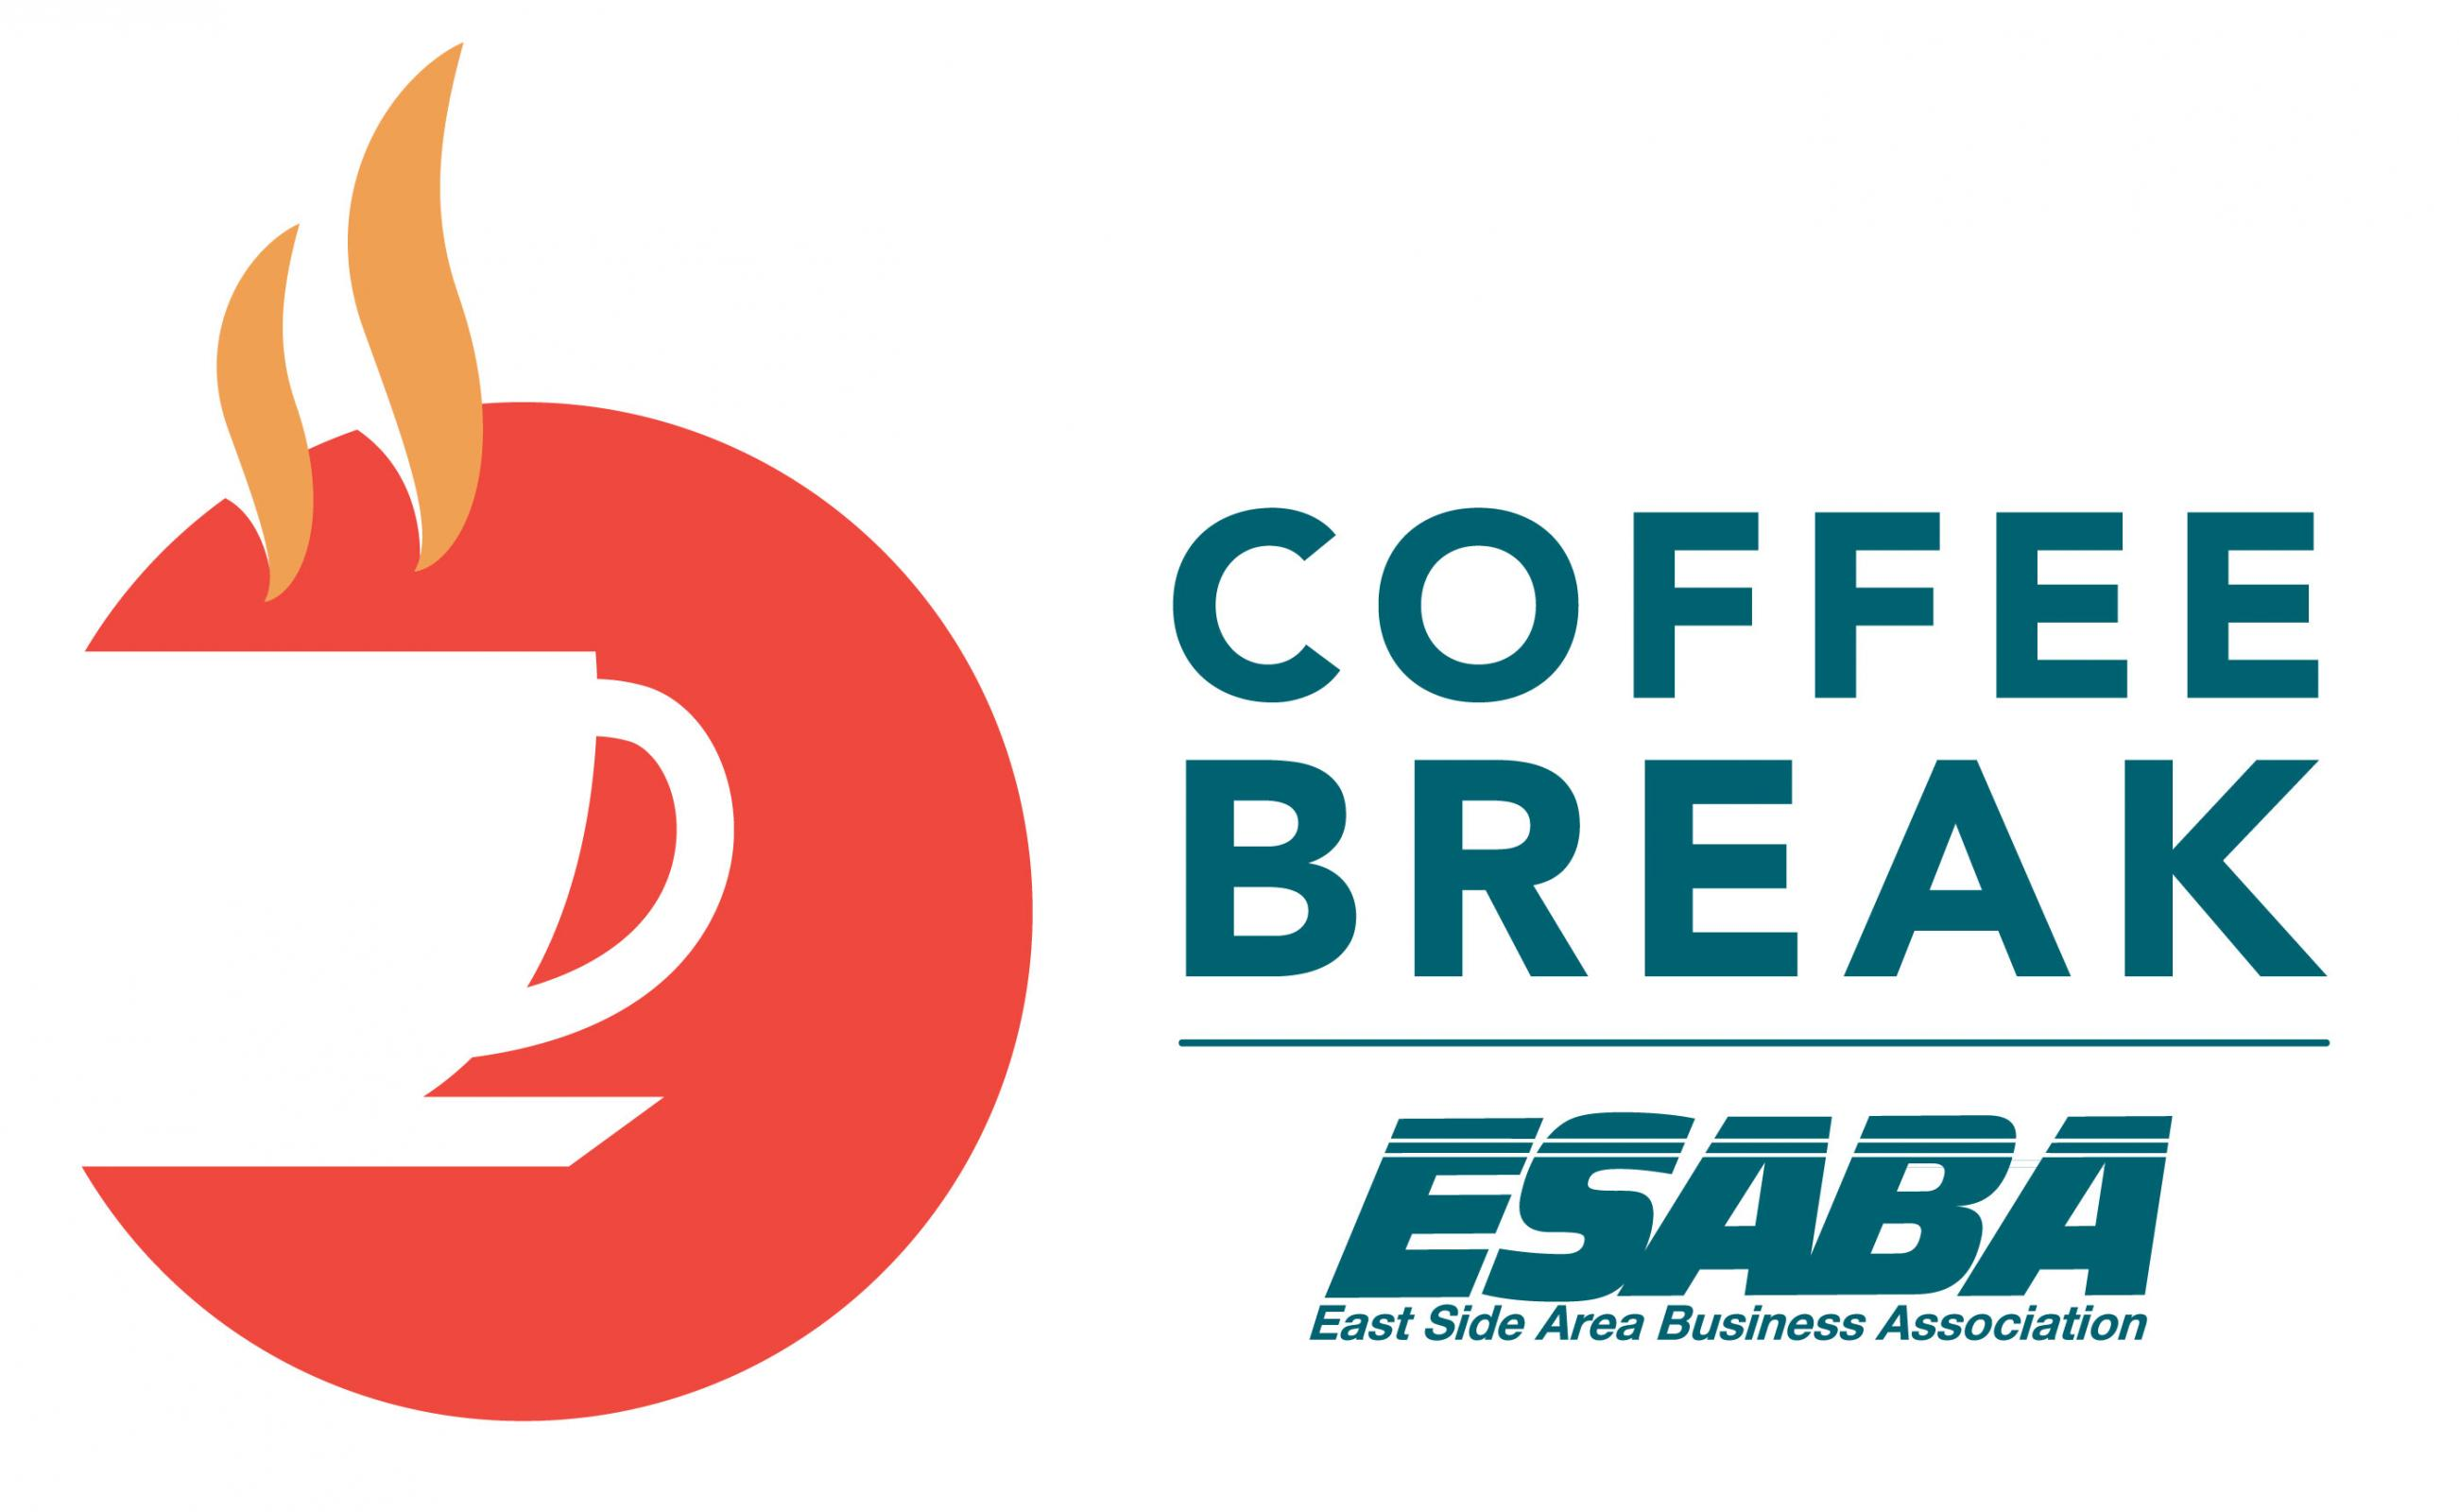 Event Promo Photo For ESABA Coffee Break - The Beloved Church